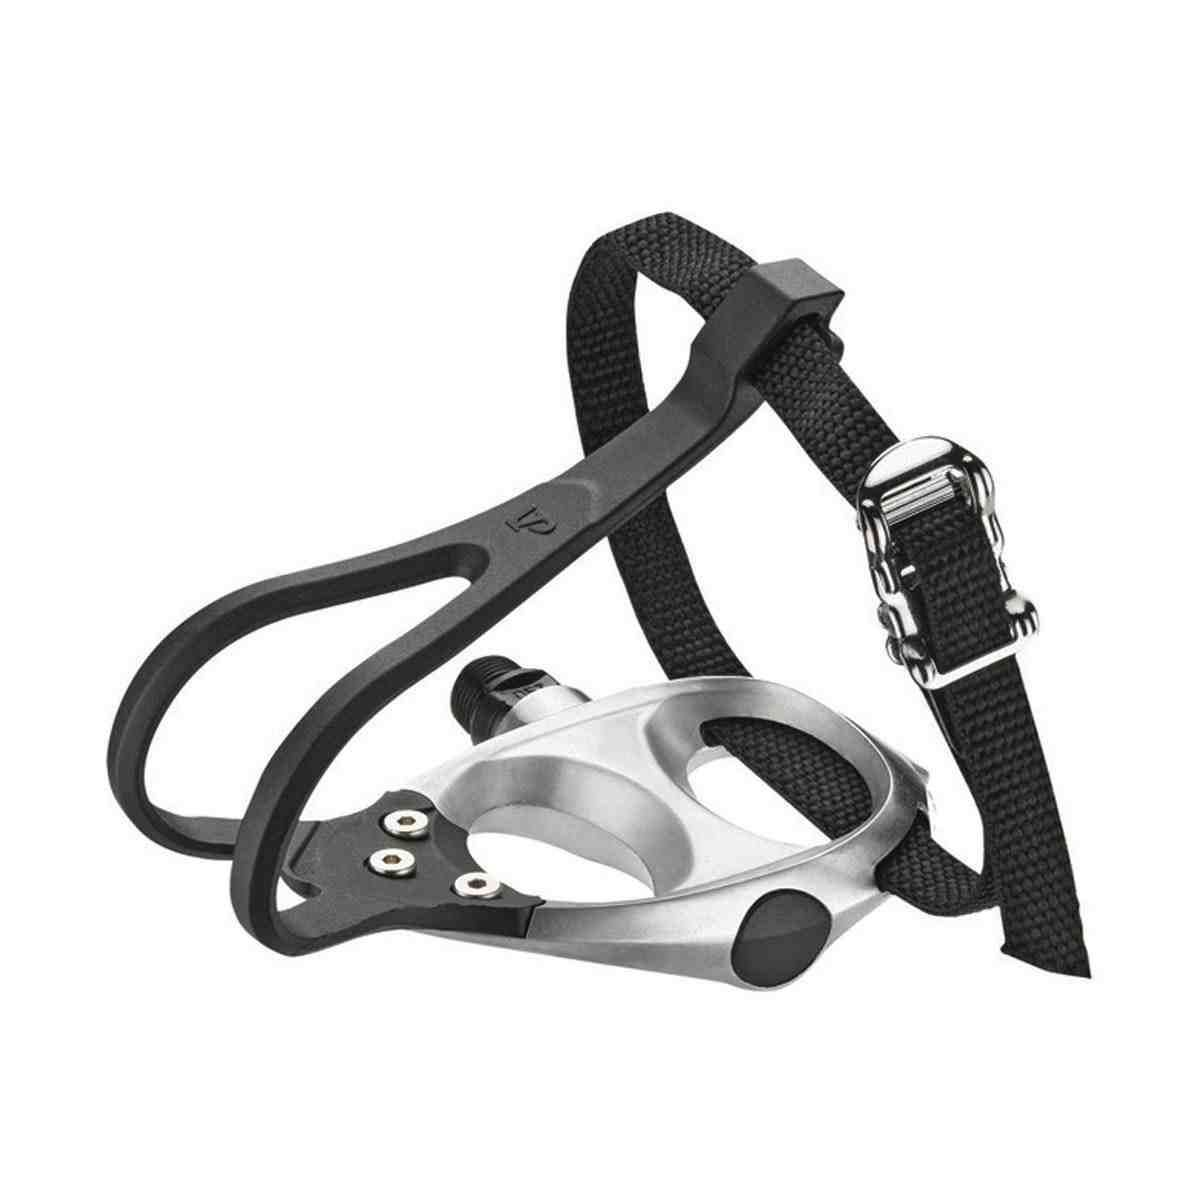 Best Toe Clip Pedals With Images Cycling Pedals Bike Pedals